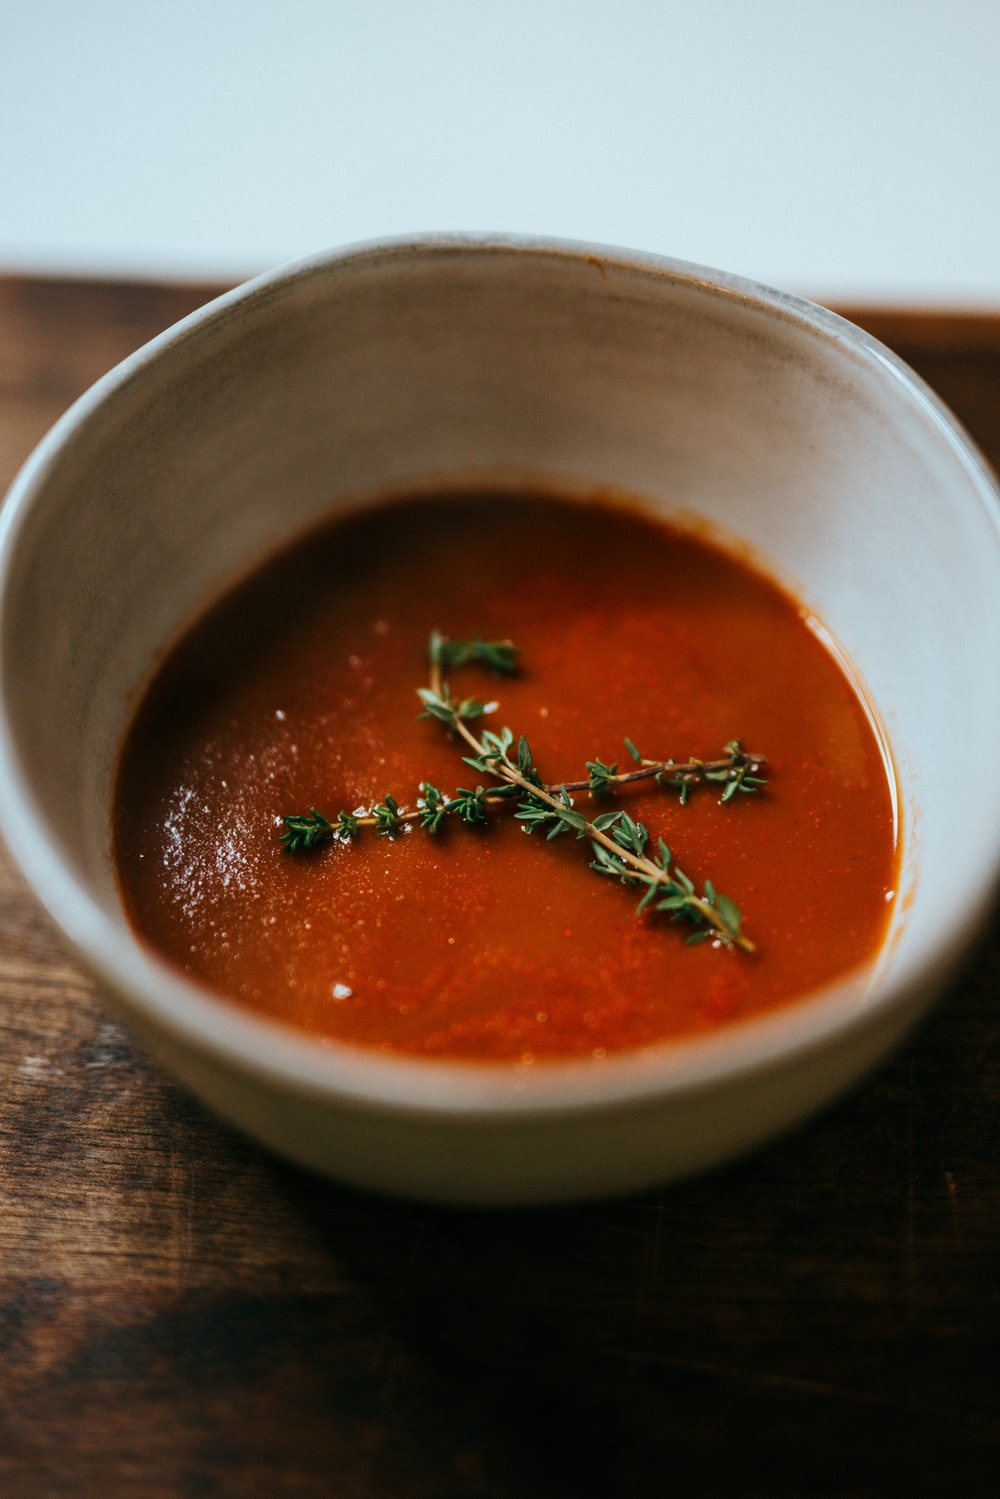 red soup in stainless steel bowl